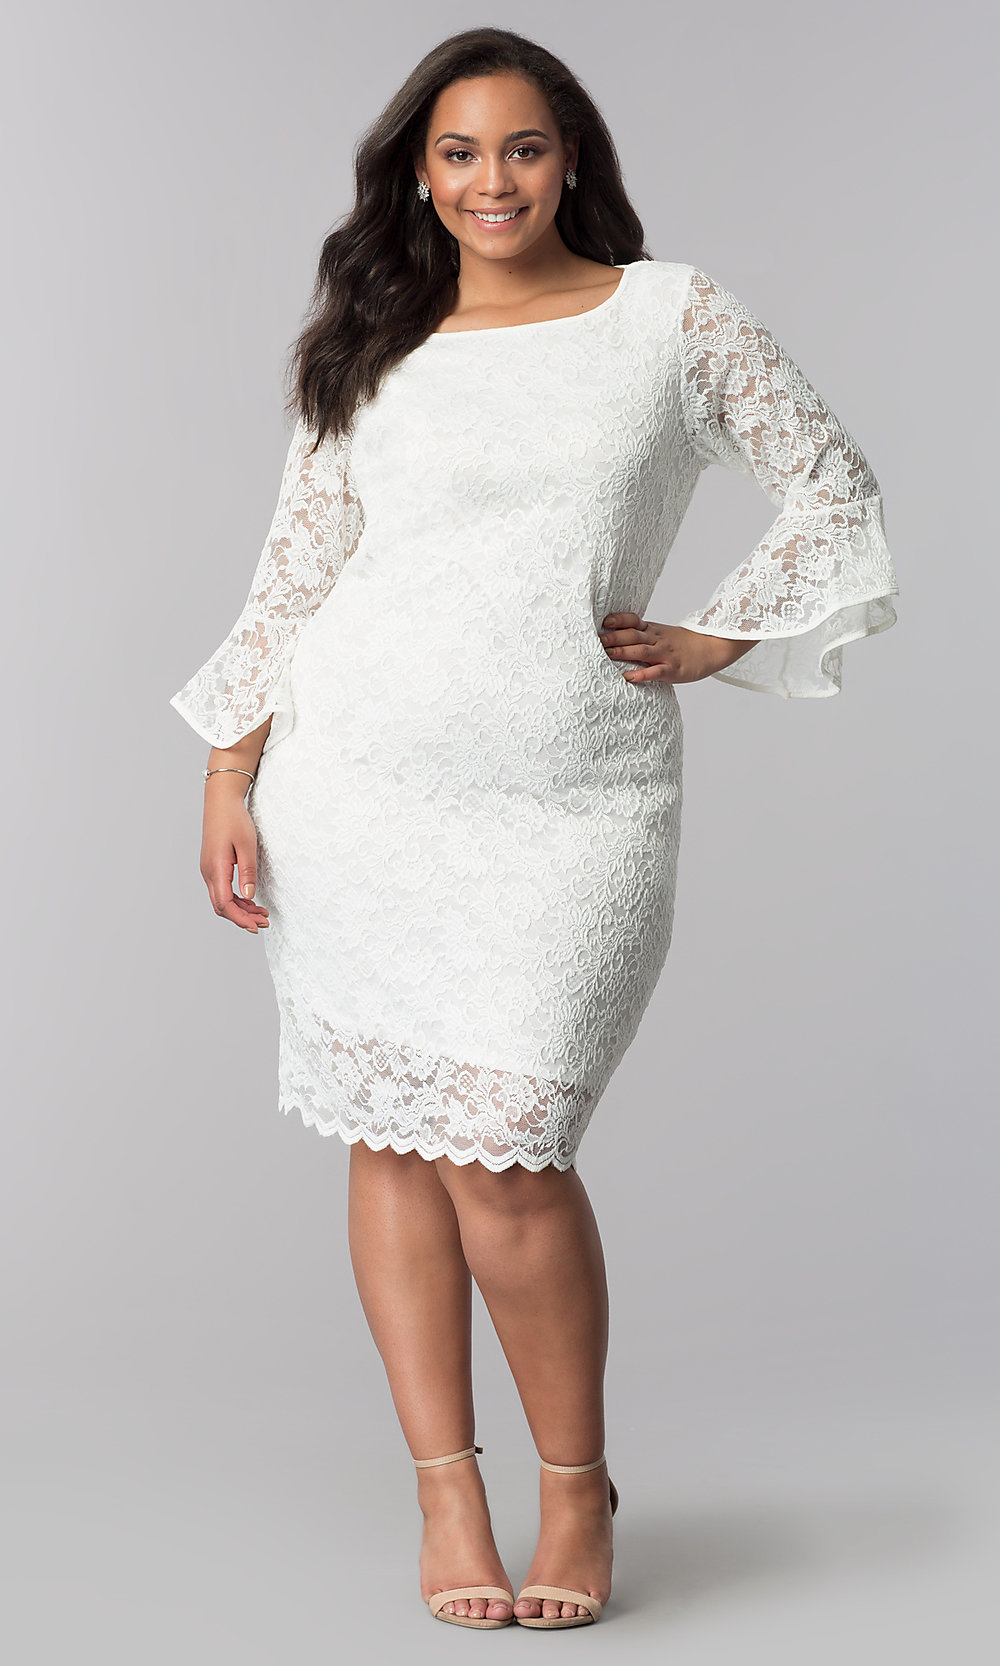 White Plus-Size Short Lace Party Dress with Sleeves